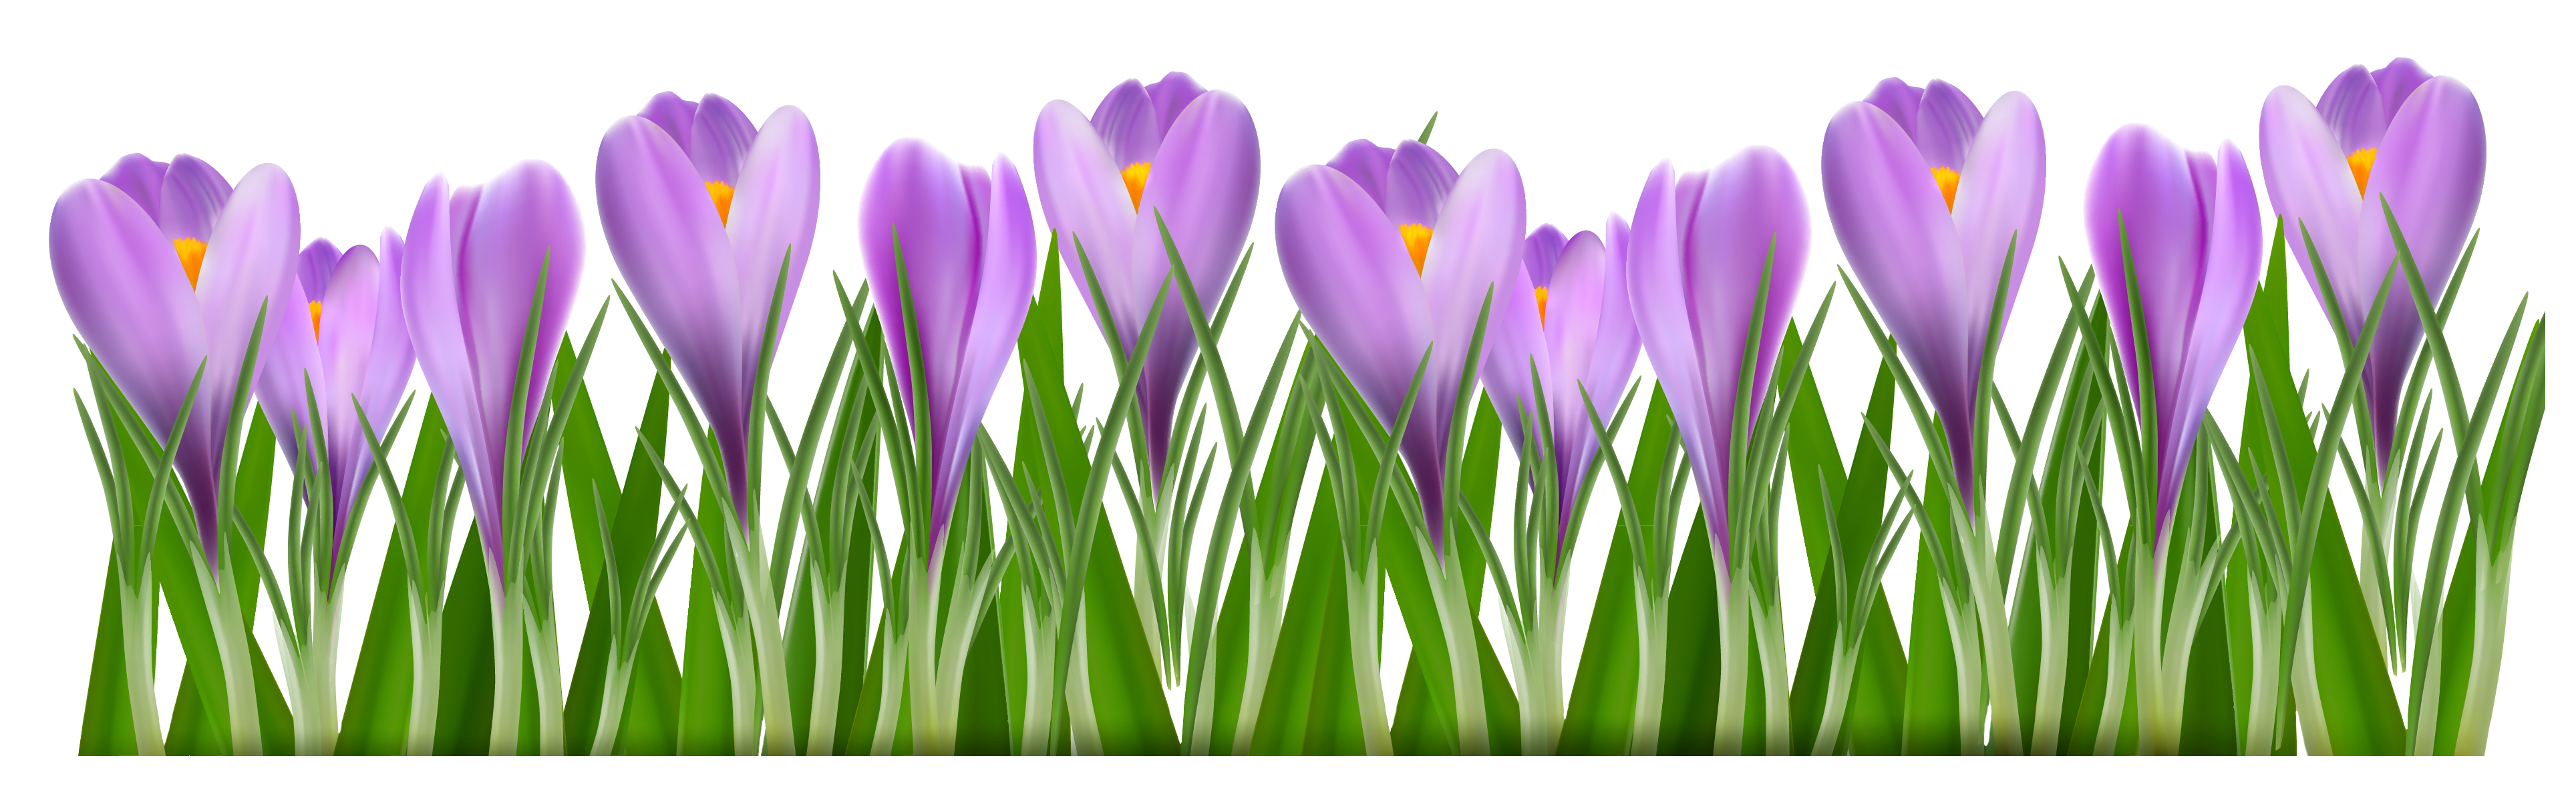 Crocus flower clipart png freeuse library Grass with Crocus PNG Clipart Picture | Gallery Yopriceville - High ... png freeuse library